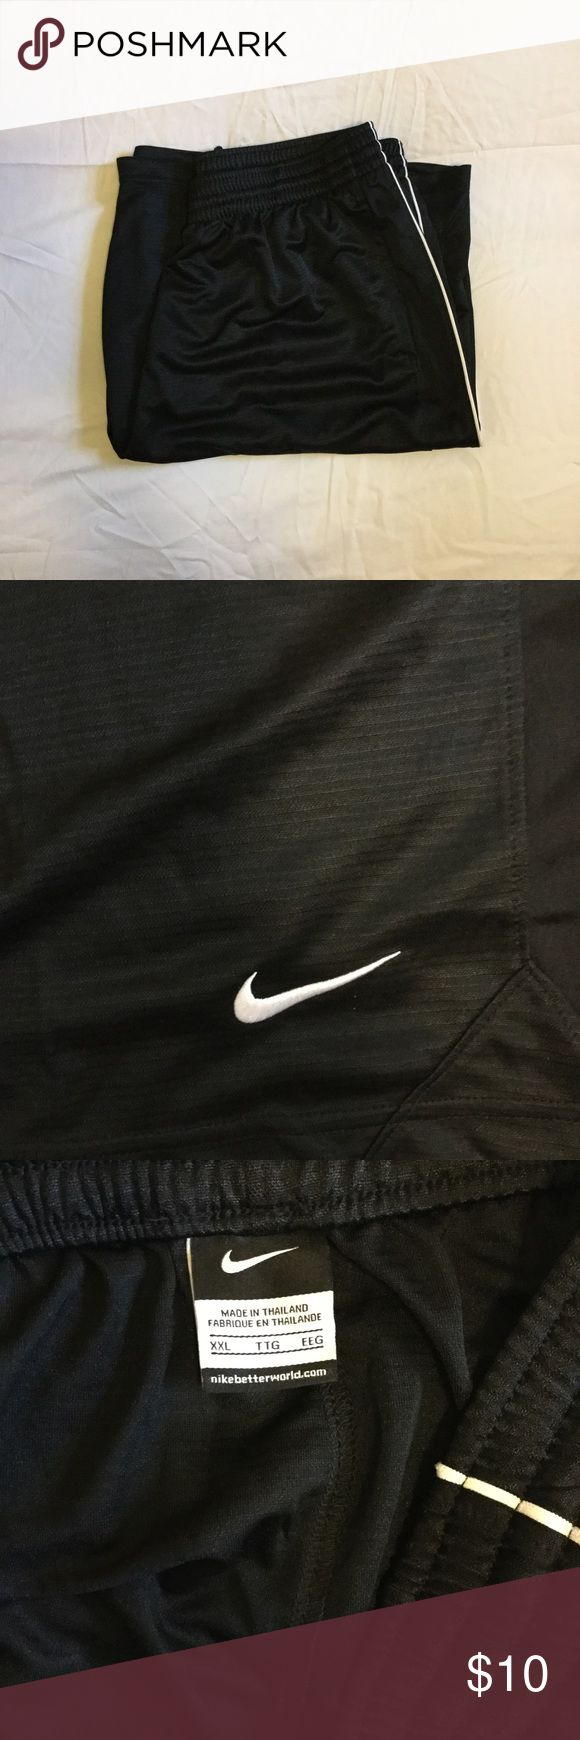 Men's Nike Basketball Shorts. All black Nike basketball shorts. Comfortable. Shiny material. Size XXL Nike Shorts Athletic